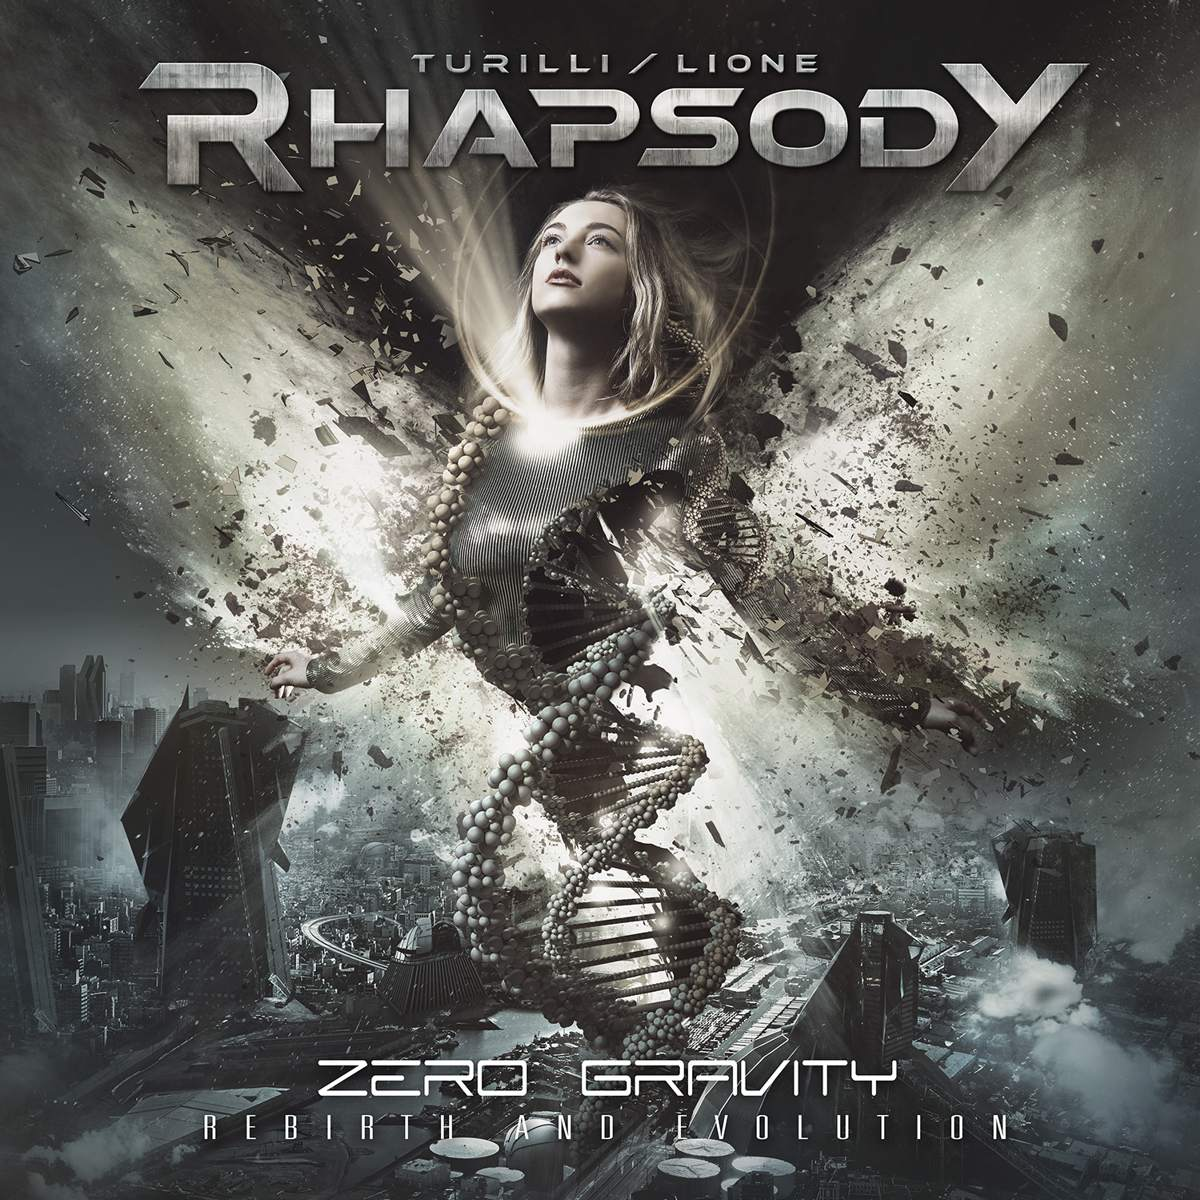 Turilli / Lione Rhapsody — Zero Gravity (Rebirth And Evolution) (2019)